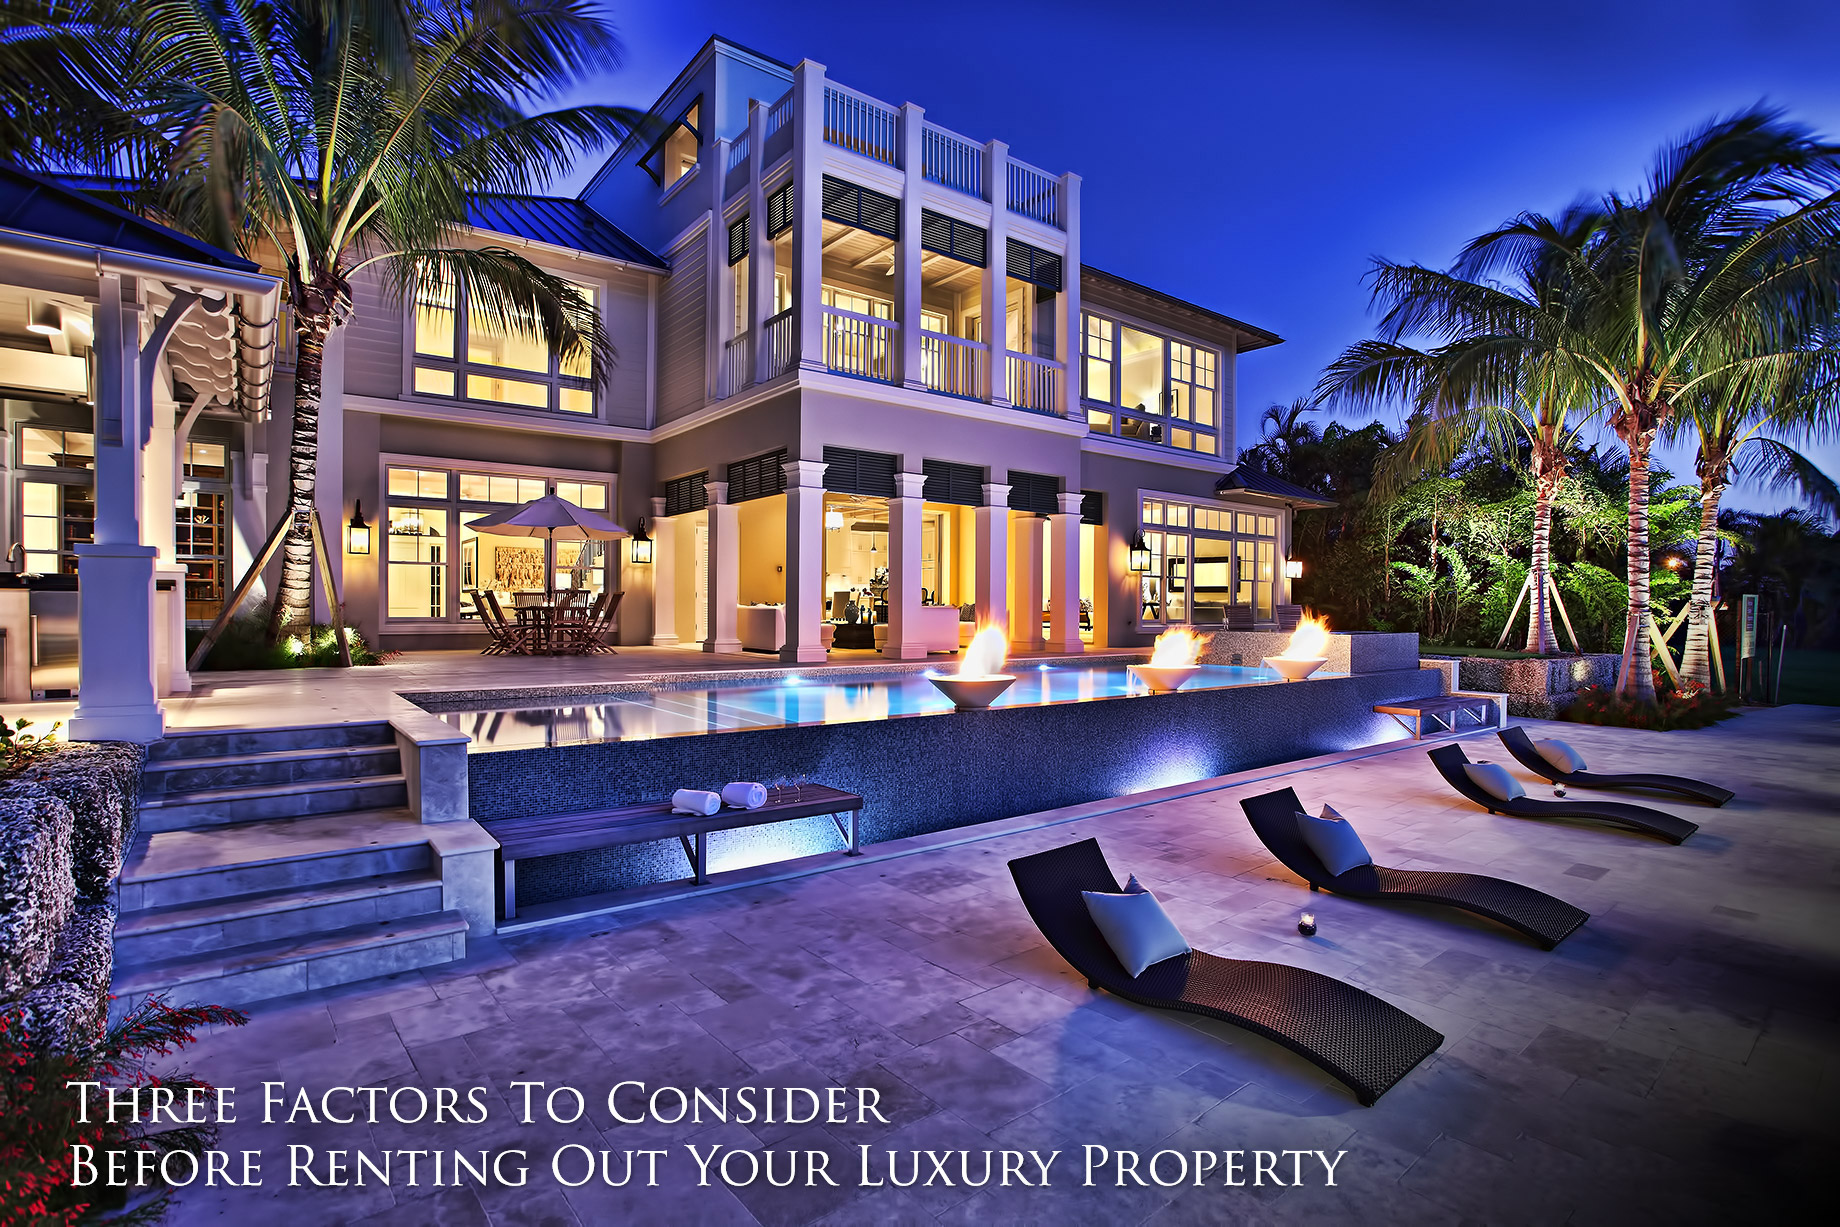 Three Factors To Consider Before Renting Out Your Luxury Property